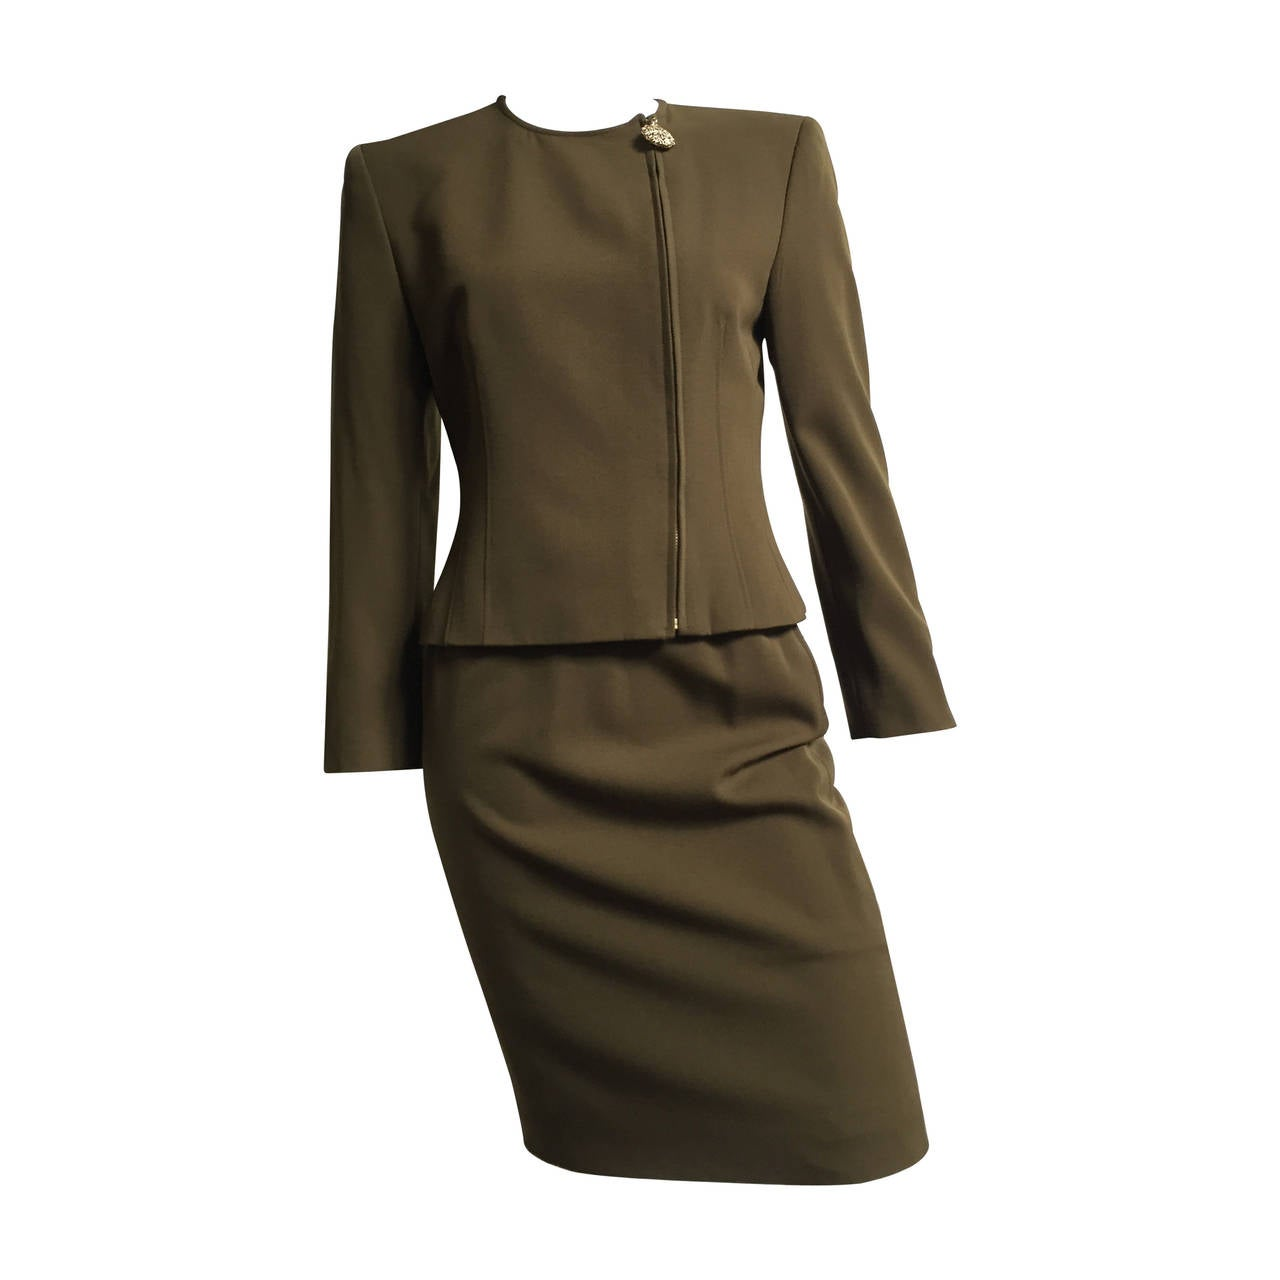 Genny by Versace Olive Skirt Suit Size 4  1